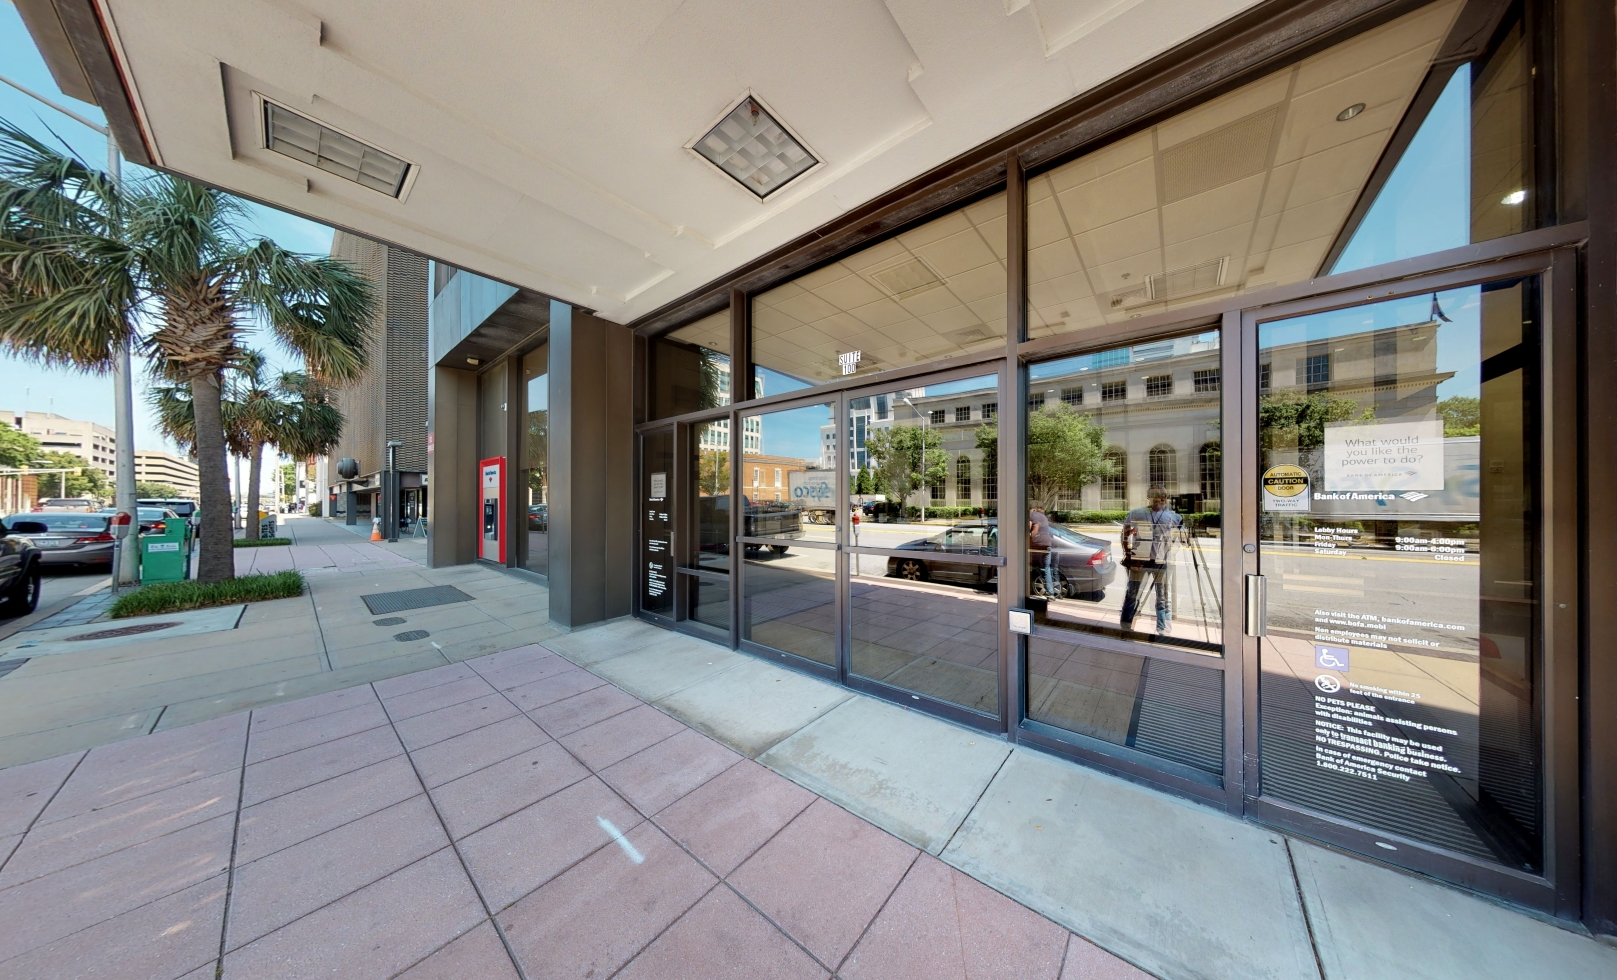 Bank of America financial center with drive-thru ATM | 1301 Gervais St, Columbia, SC 29201